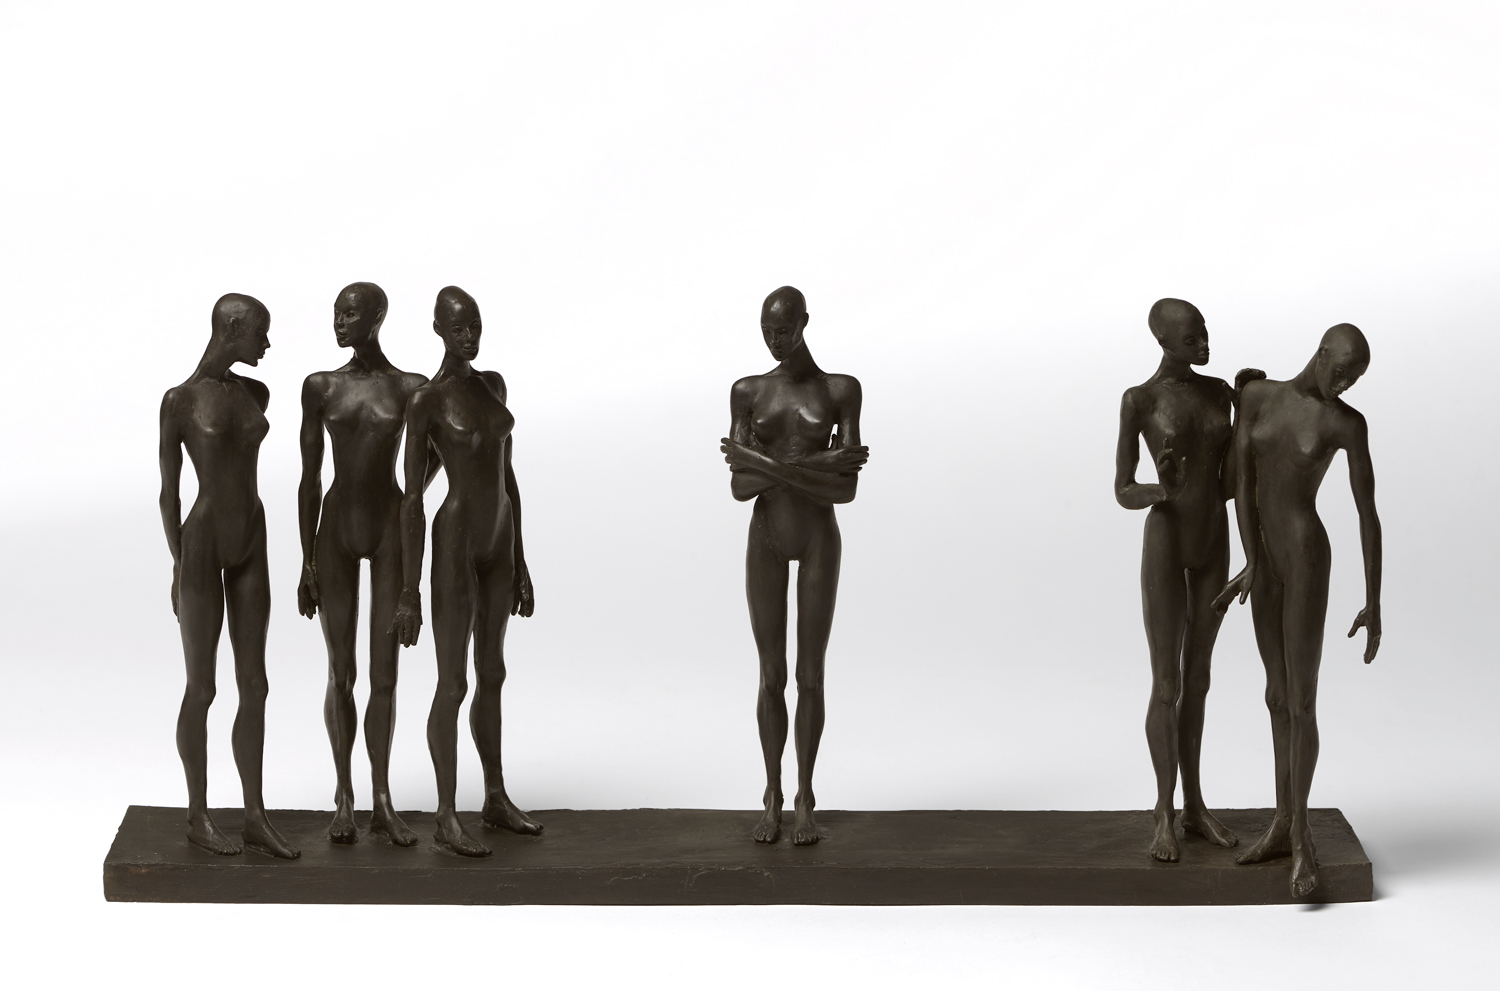 An Interesting Story , 2019 bronze  11 1/2 x 24 x 5 inches; 29.2 x 61 x 12.7 centimeters